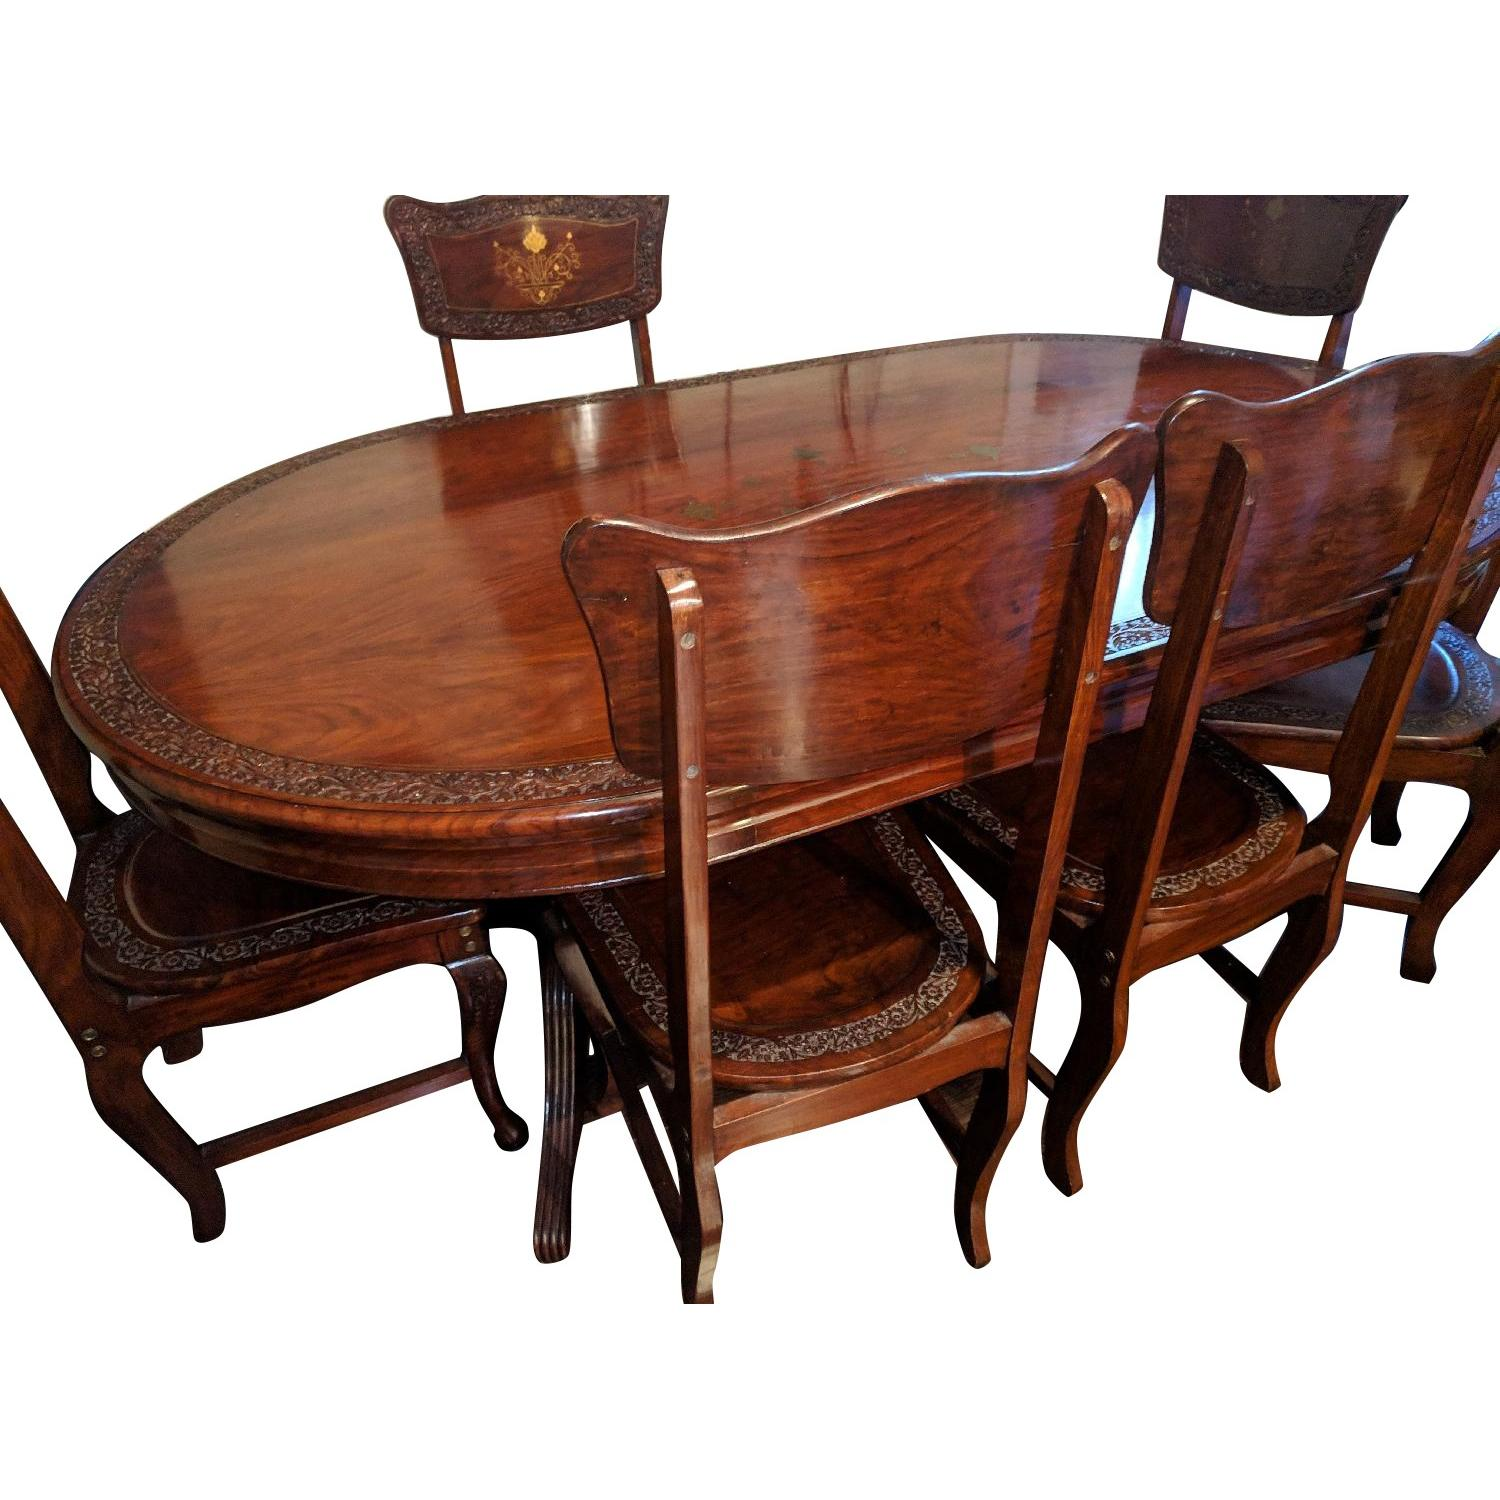 Middle Eastern Hand-Carved Brass Inlaid 7-Piece Dining Set